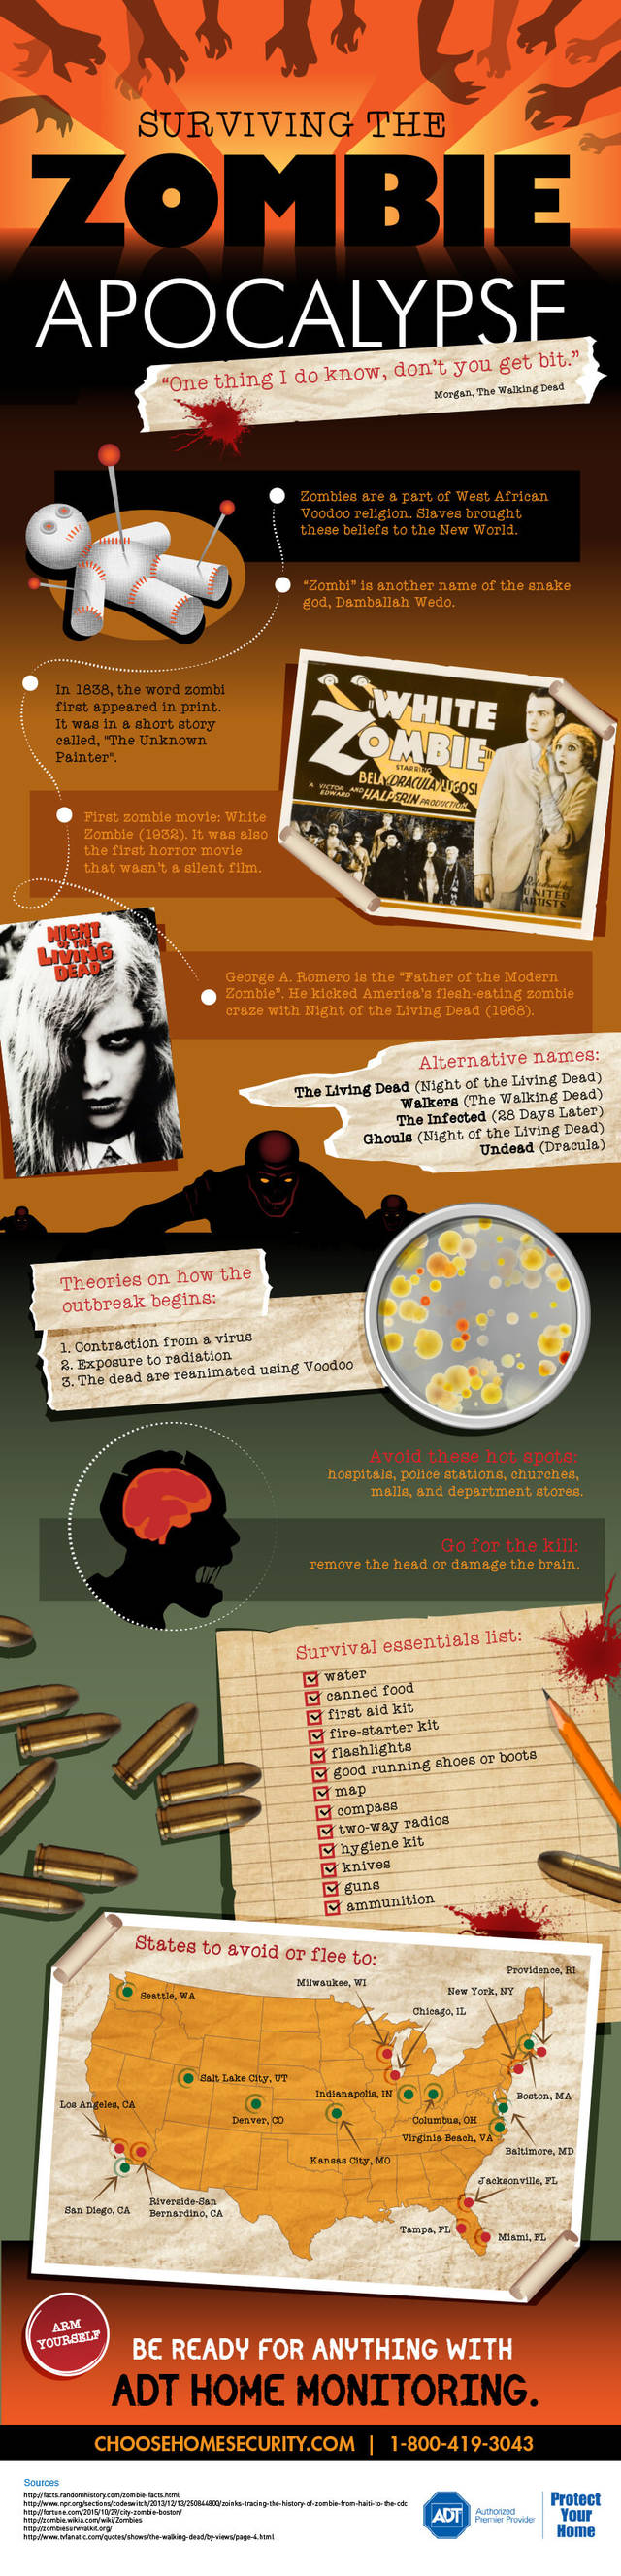 Zombieinfographic